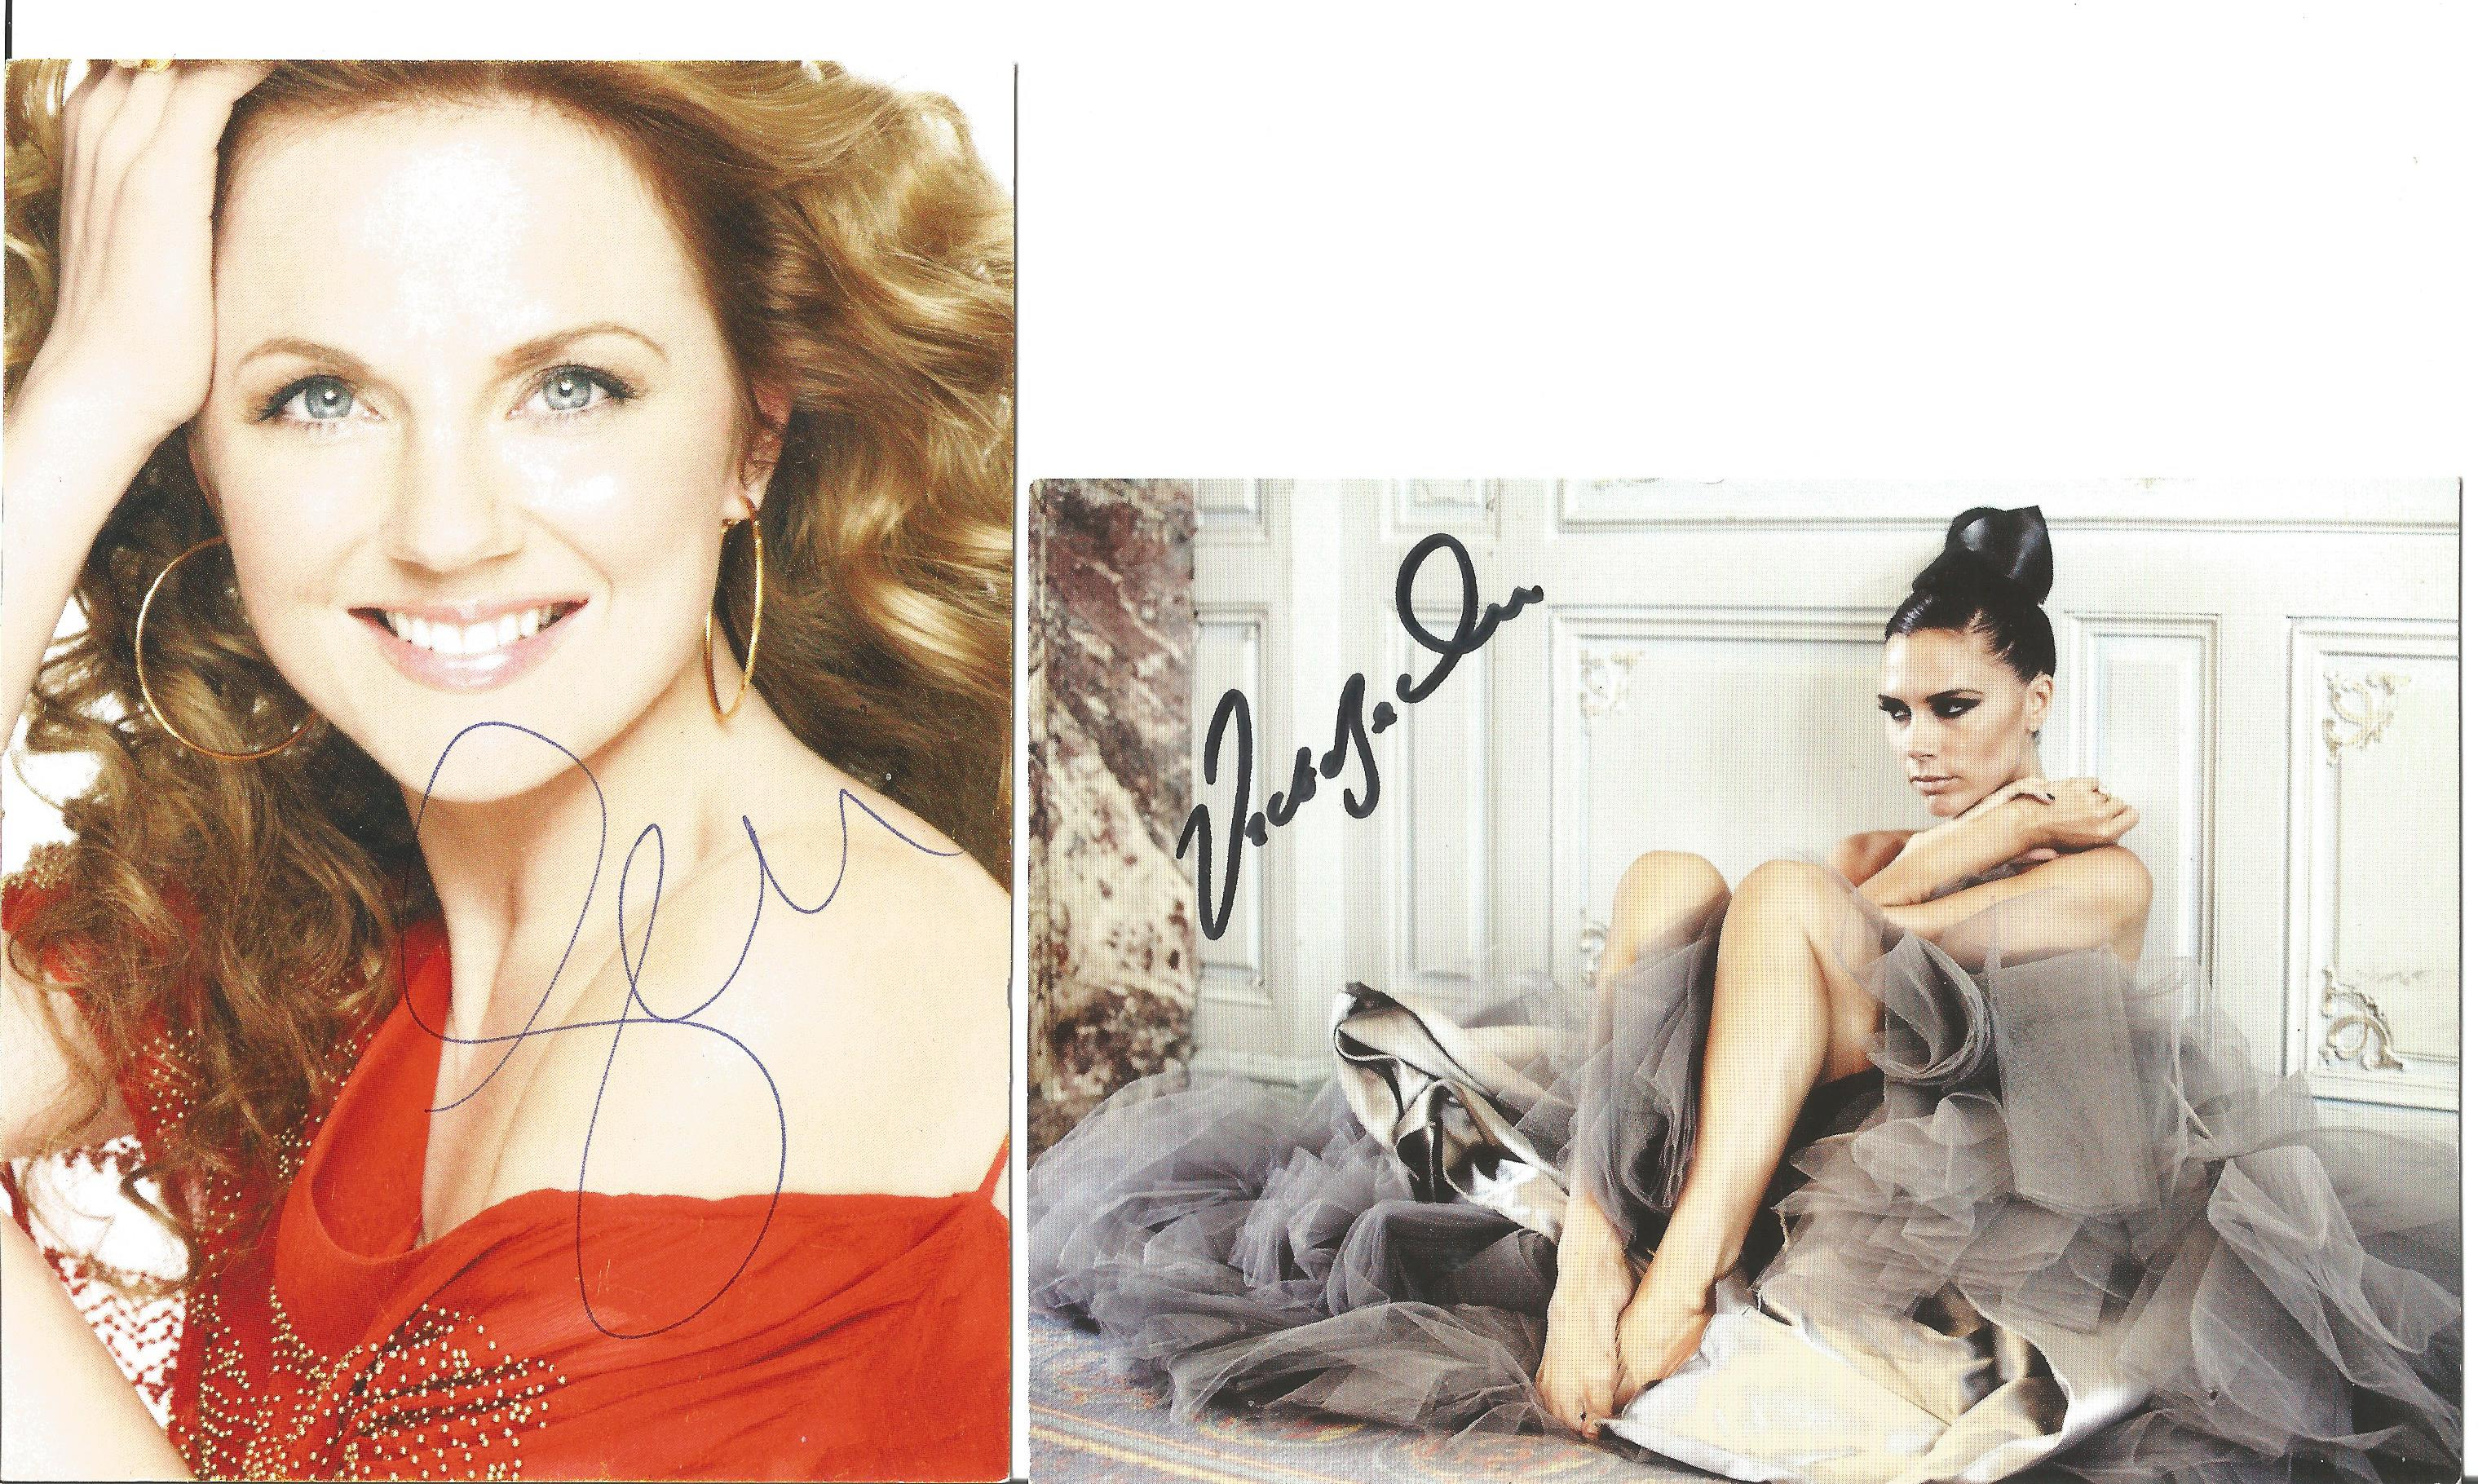 Spice Girl collection Victoria Beckham signed 6x4 colour photo and Geri Halliwell signed 6x4